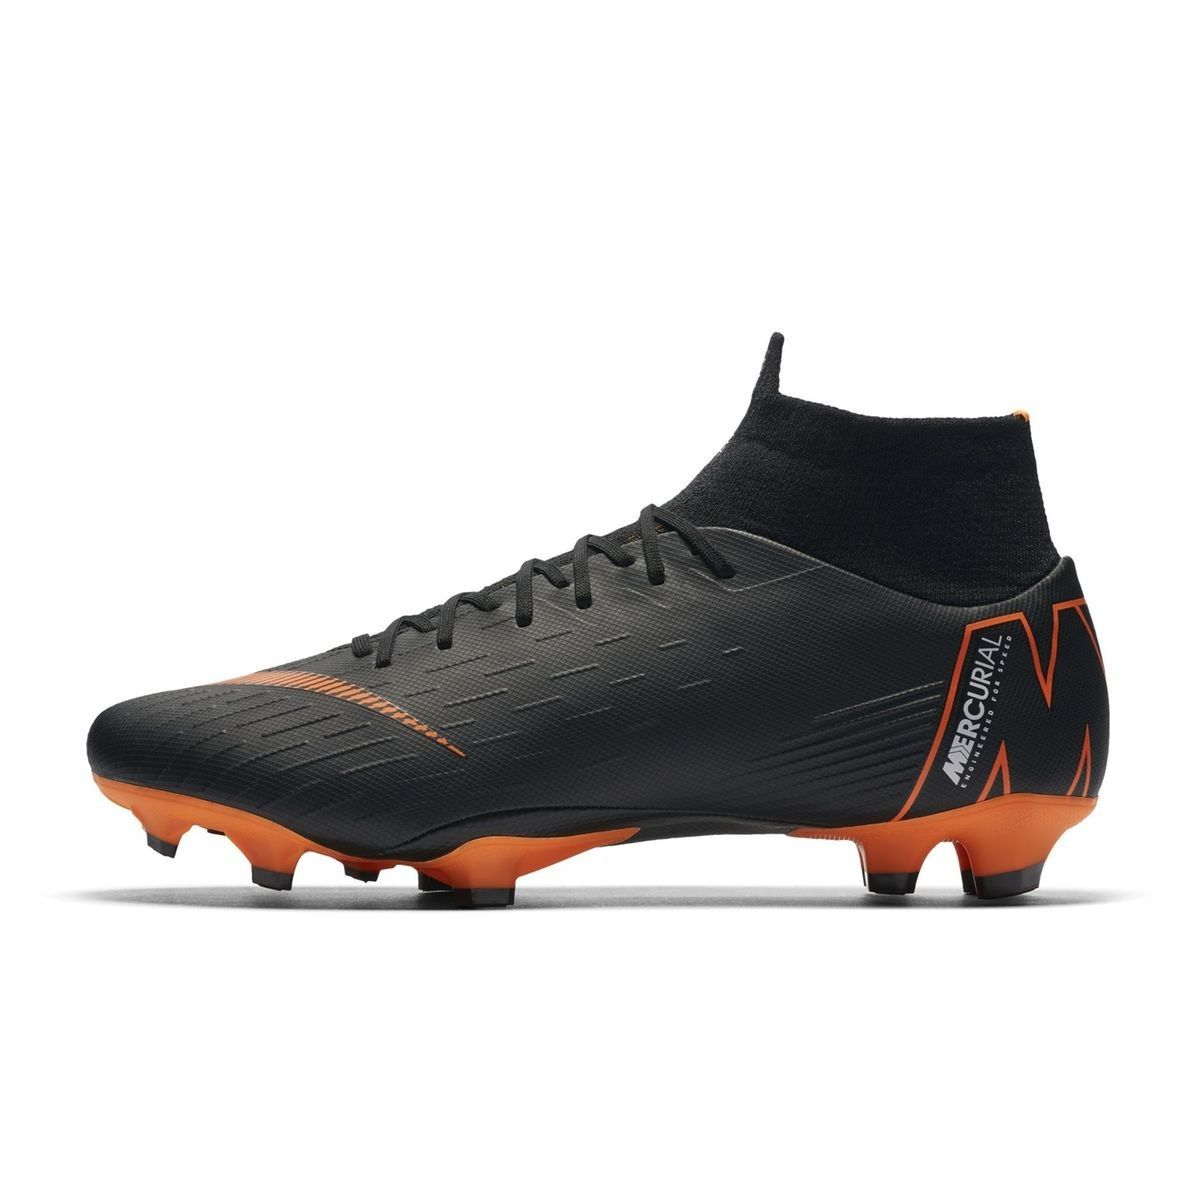 Chaussures Football Nike Mercurial Superfly 360 Vi Elite Cr7